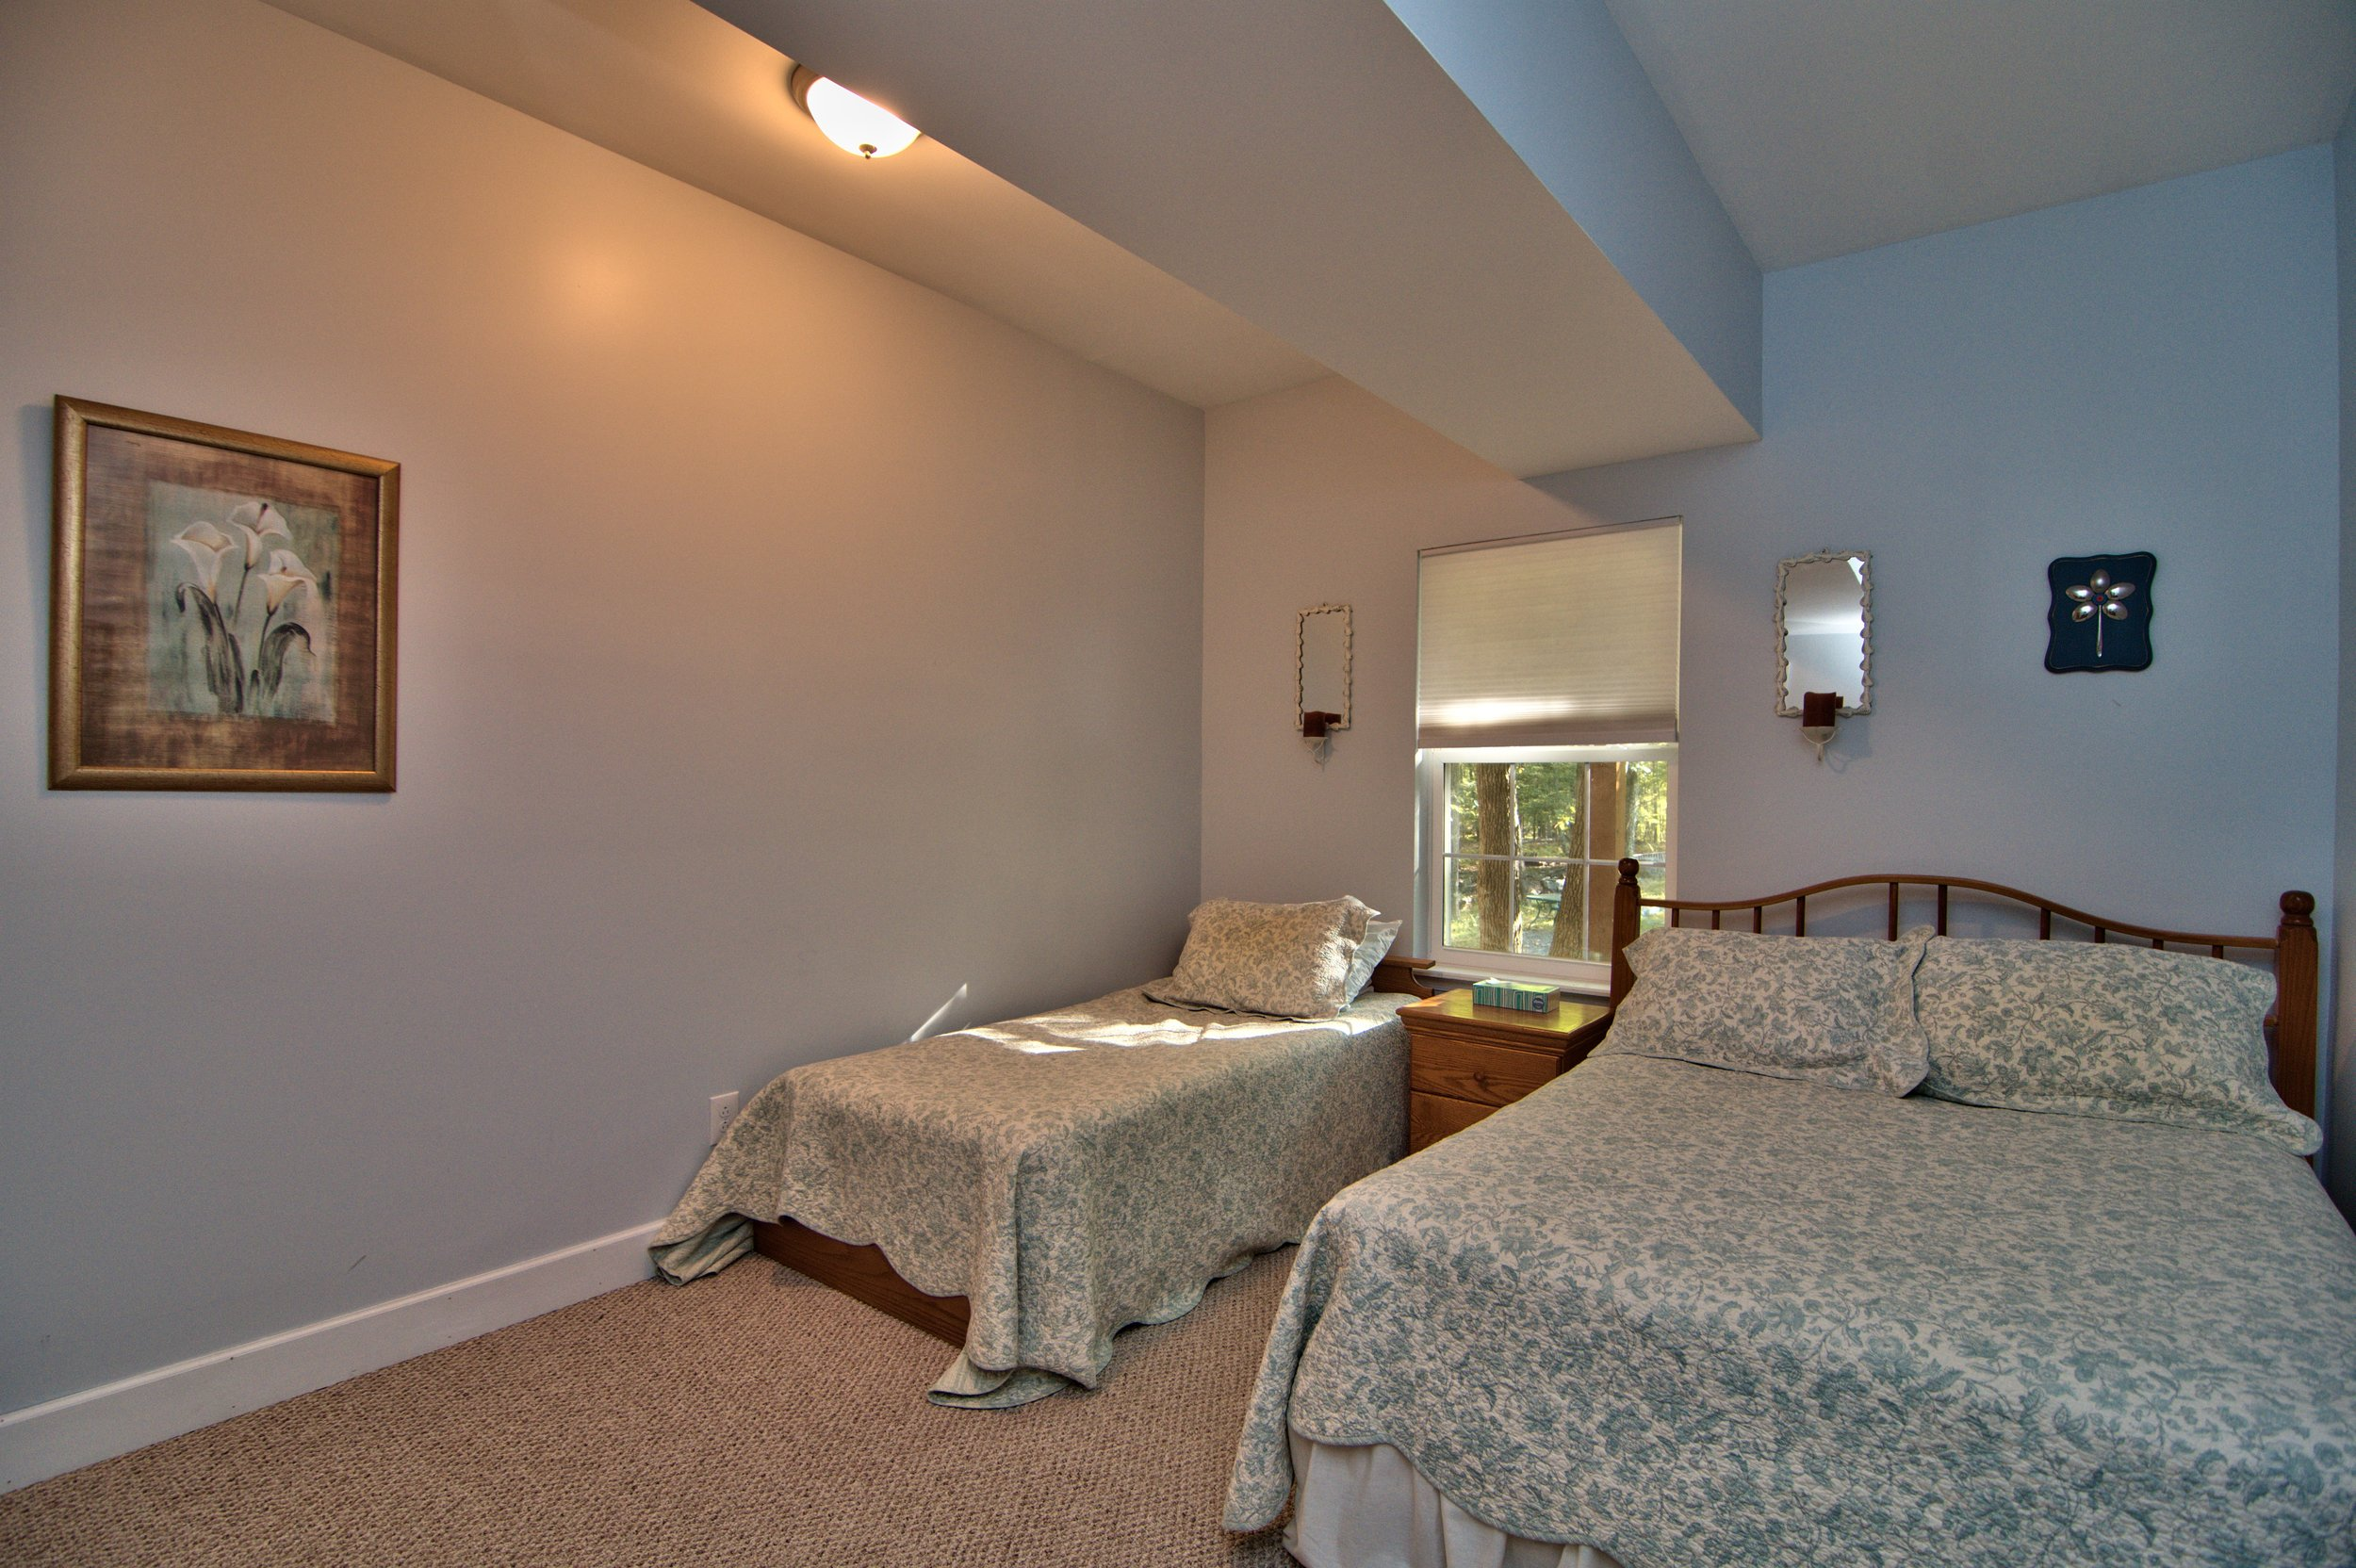 Lower Level Bedroom 2 View 2.jpg